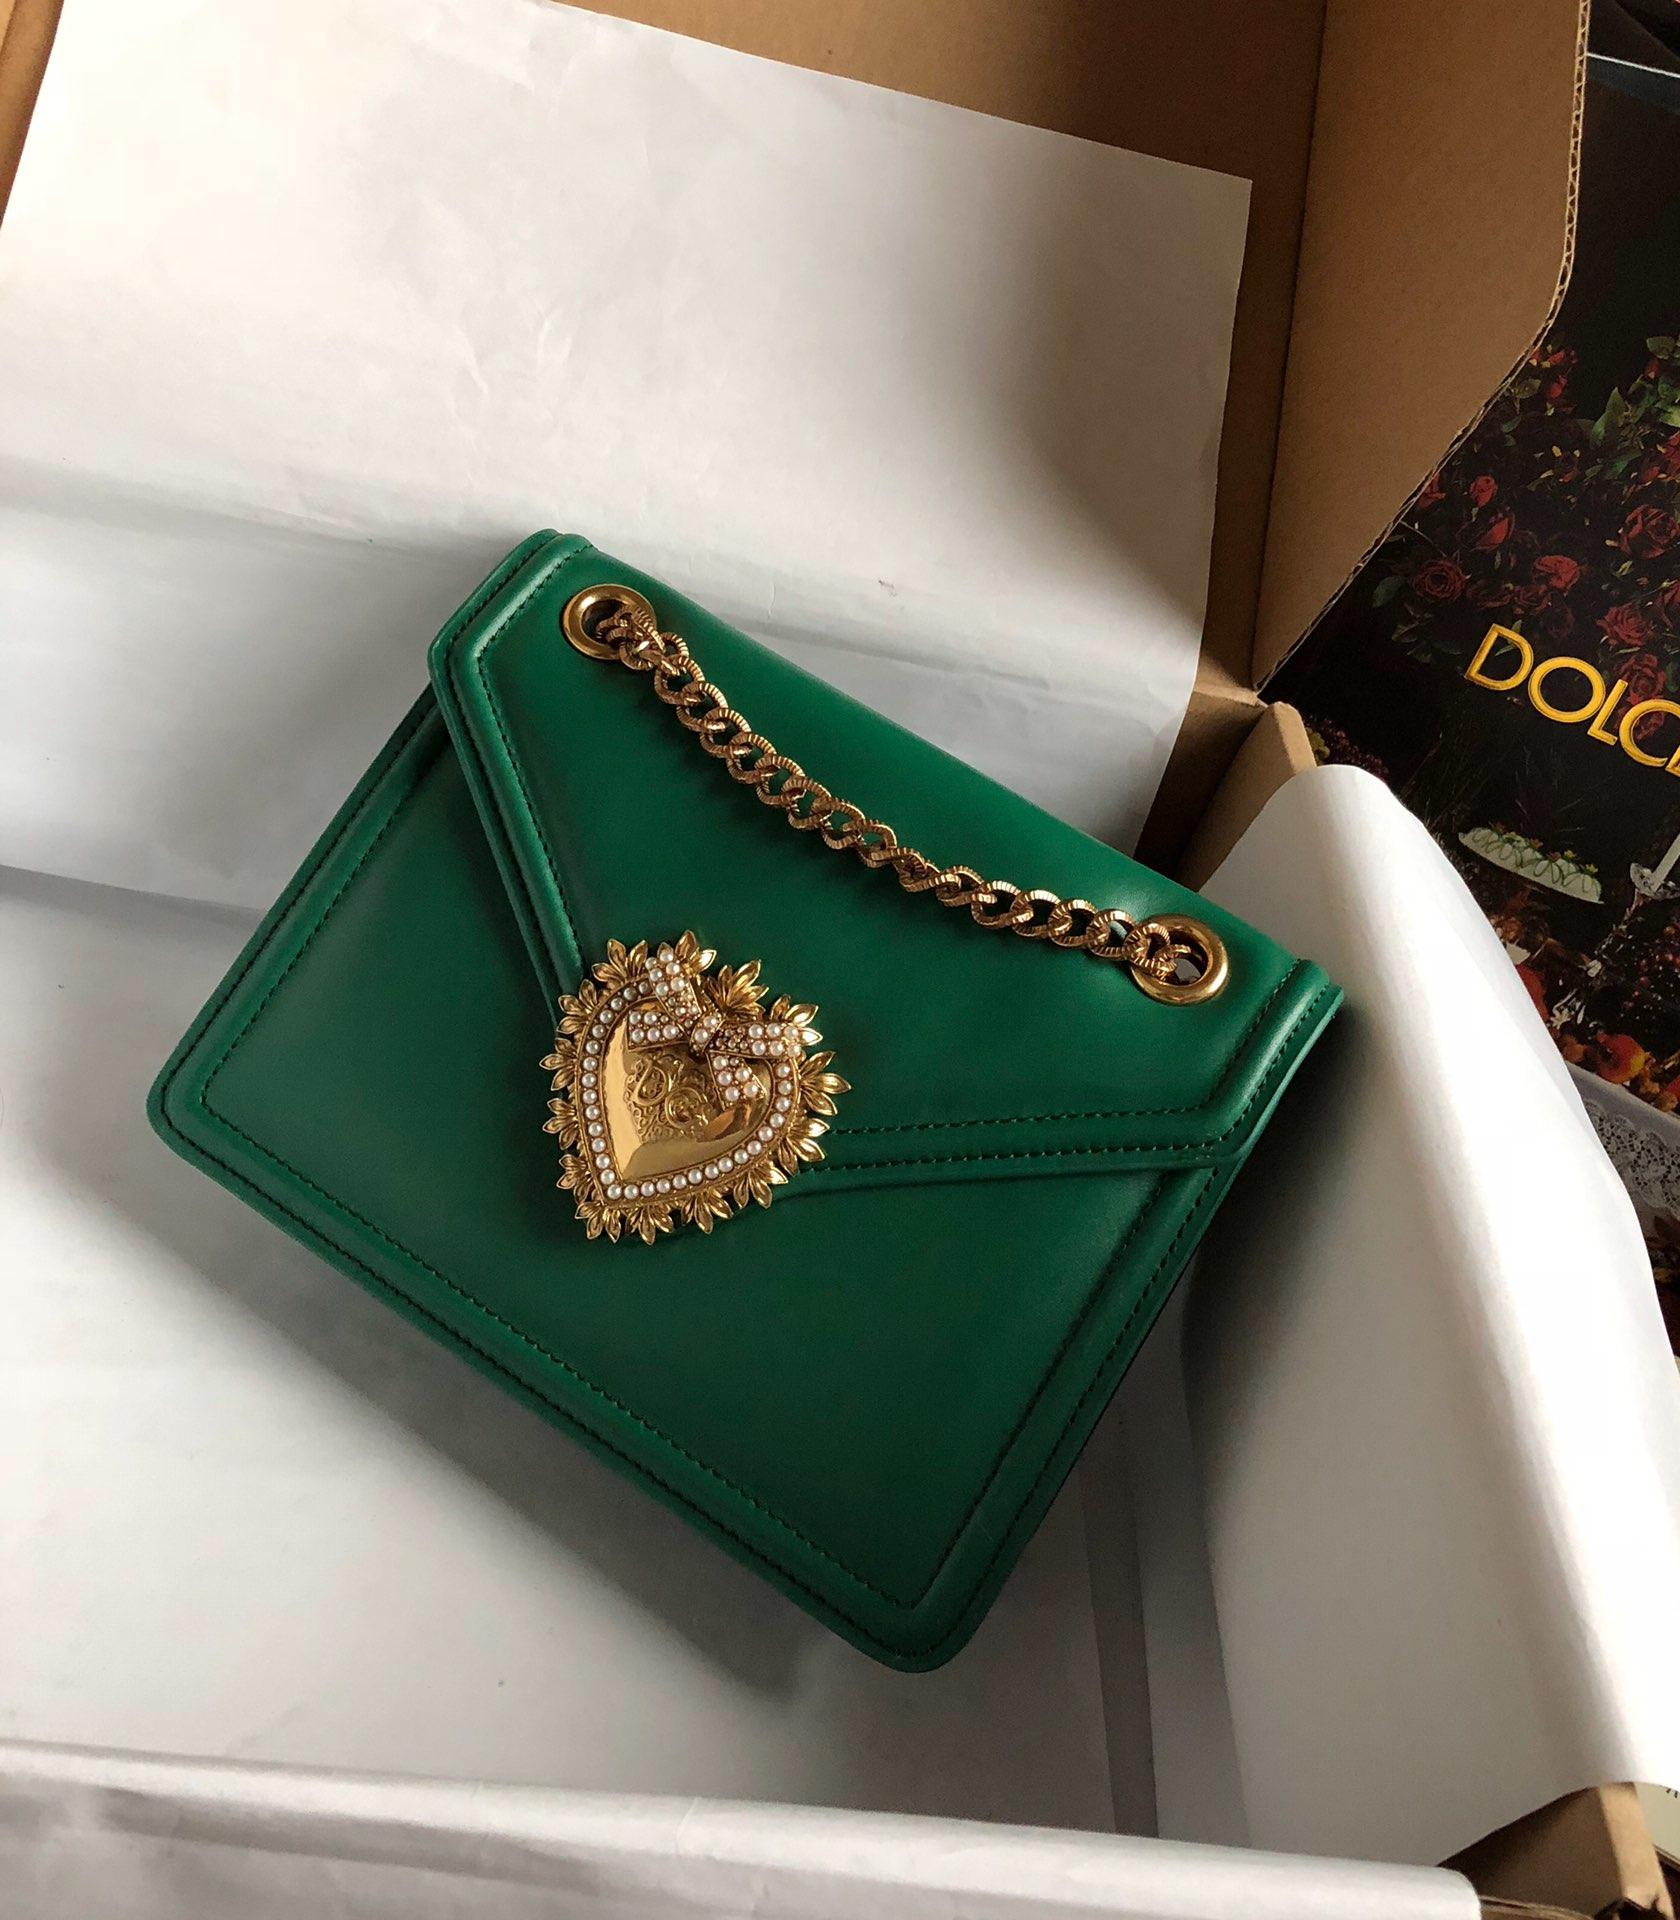 Replica Dolce & Gabbana Medium Devotion Bag in Smooth Calfskin Leather Green